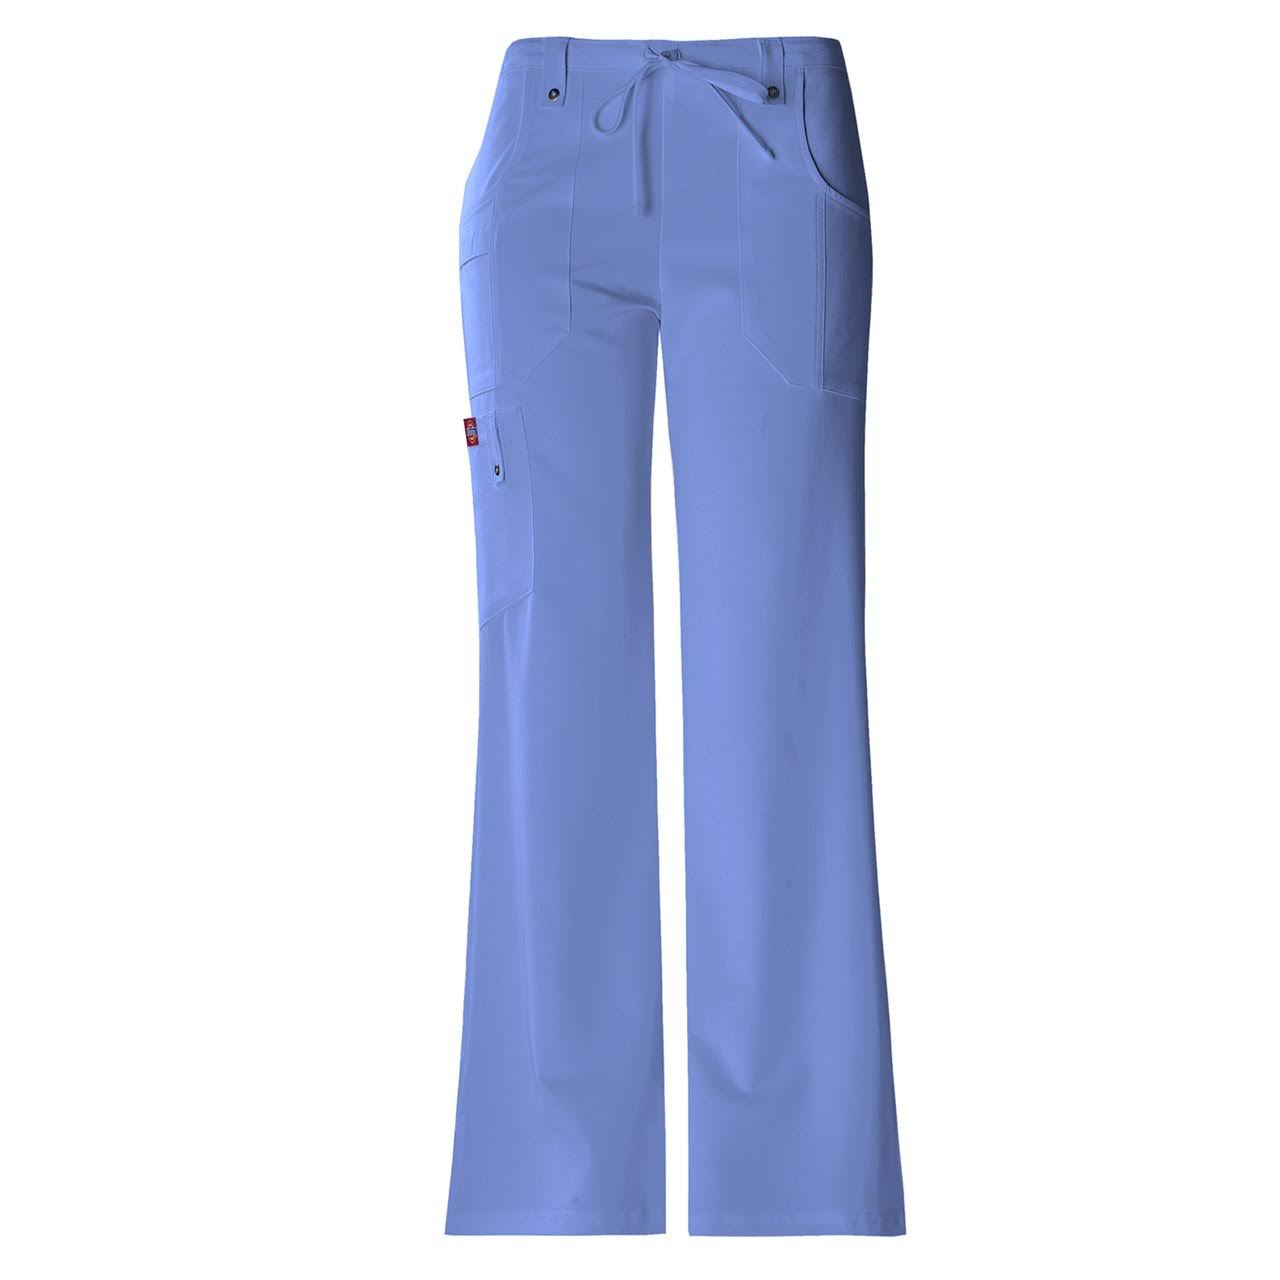 Dickies 82011 Xtreme Stretch Cargo Scrub Pants - Ceil Blue, Small